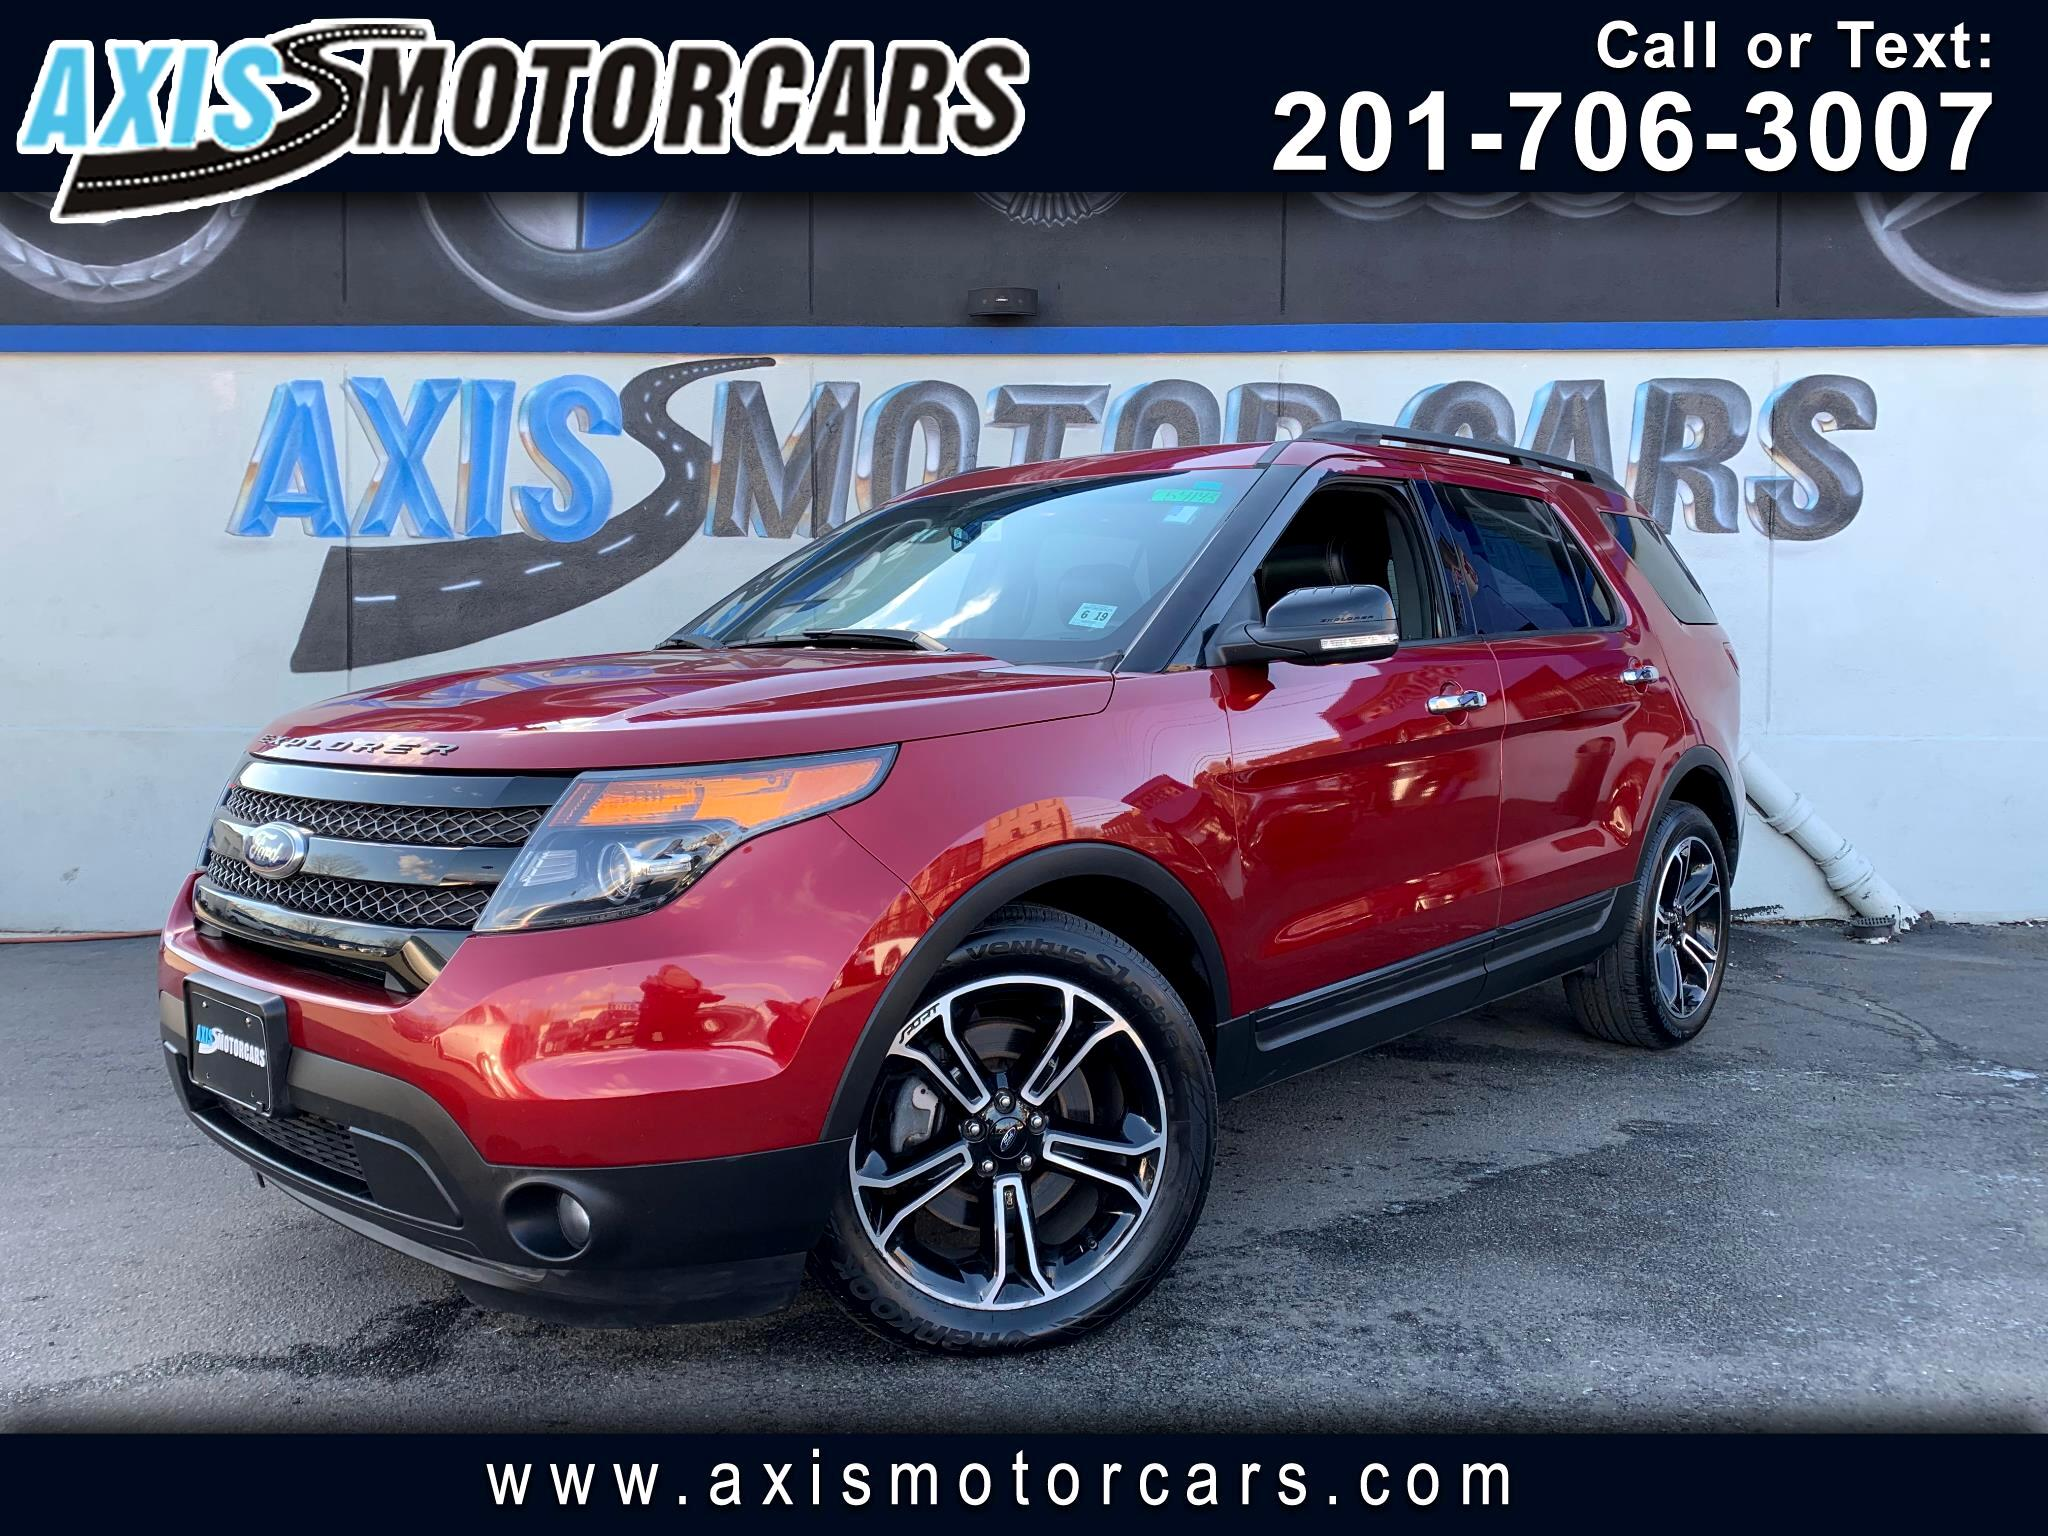 2014 Ford Explorer Sport w/Navigation Bakup Camera Panoramic Roof